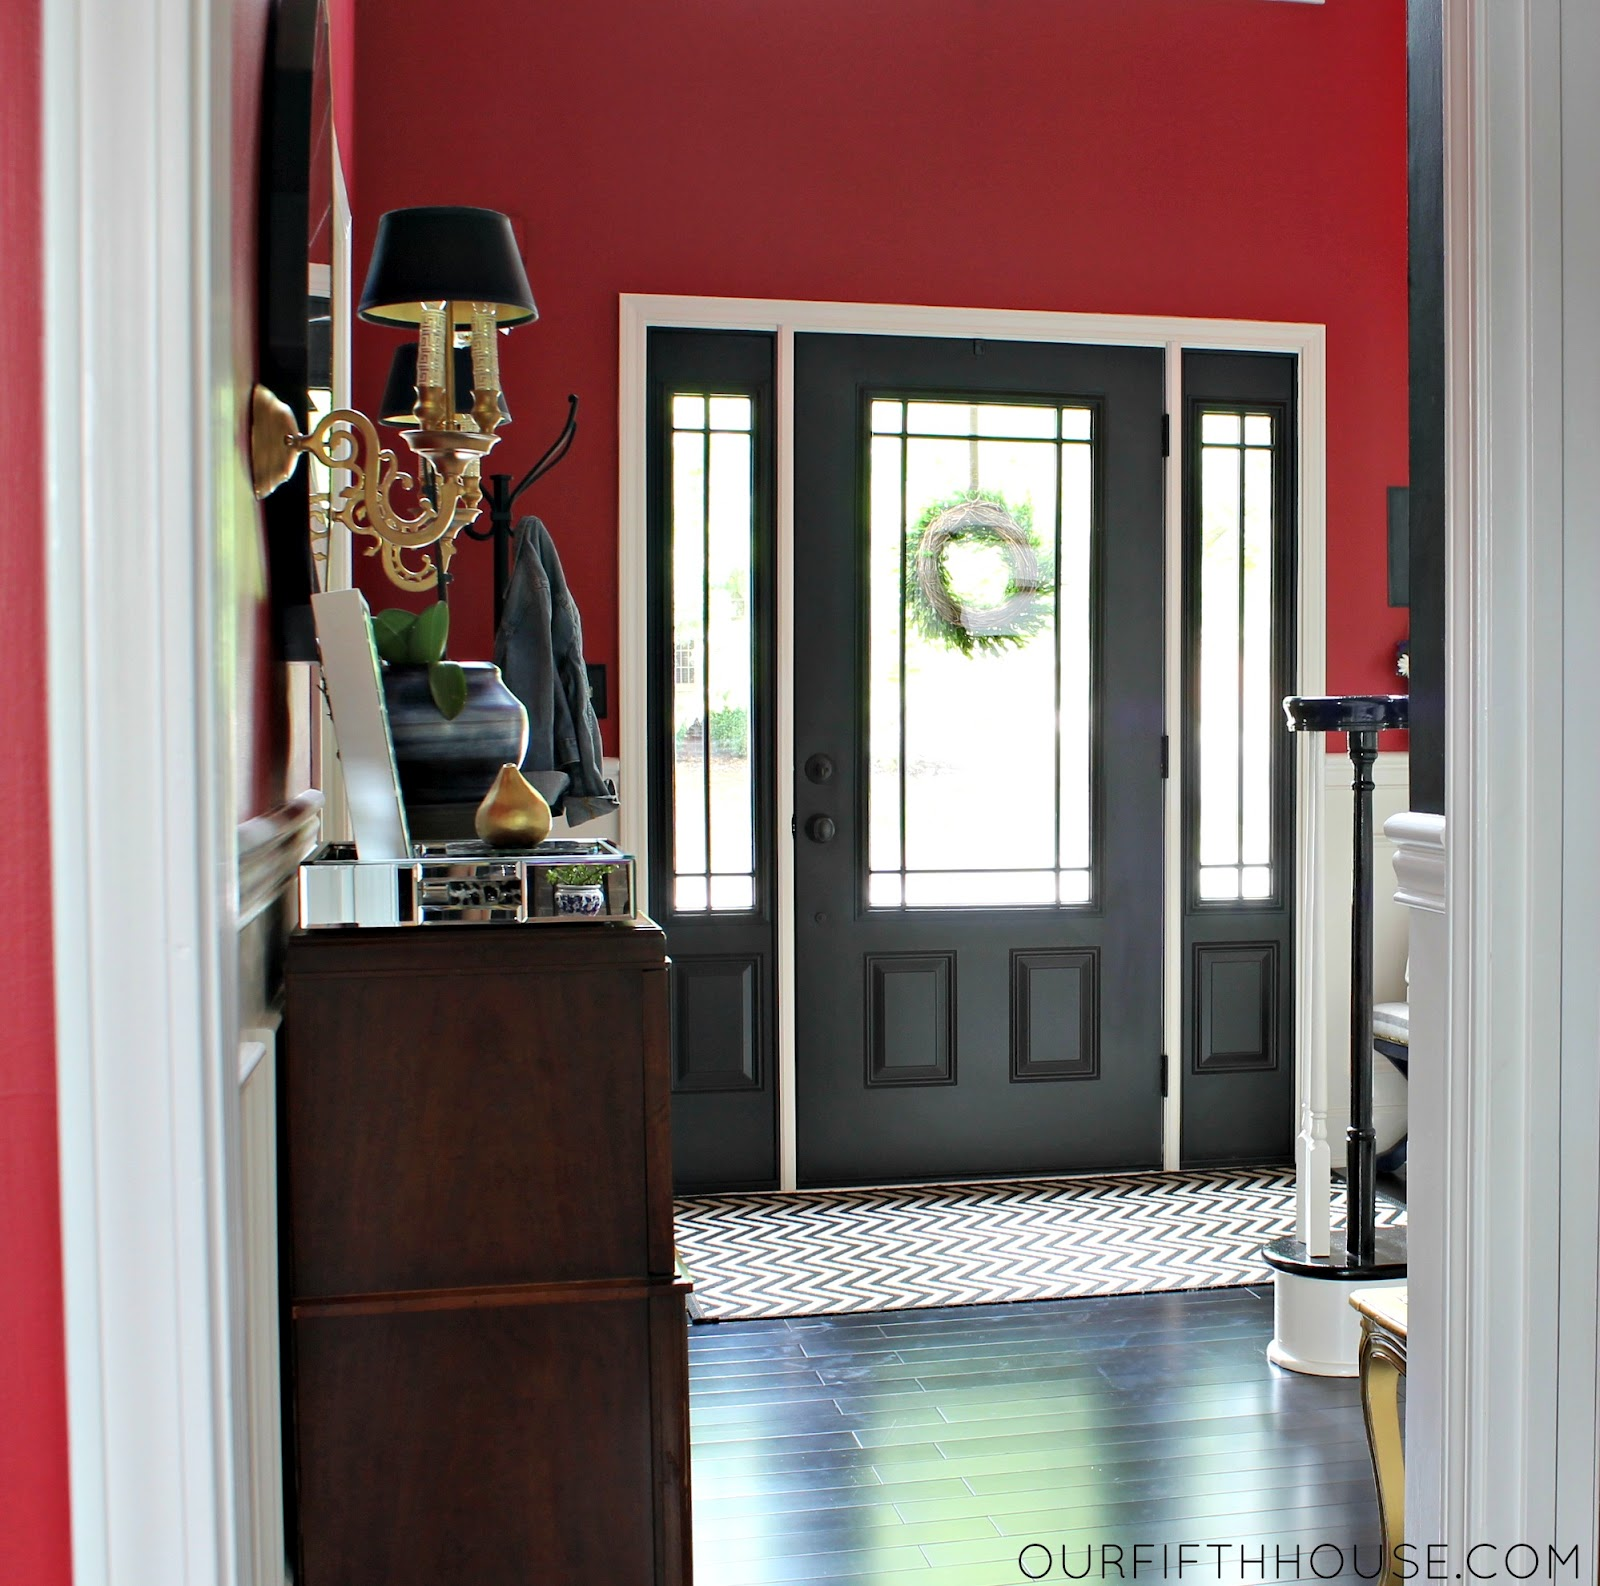 Our Fifth House: Speaking of Black Interior Doors..........